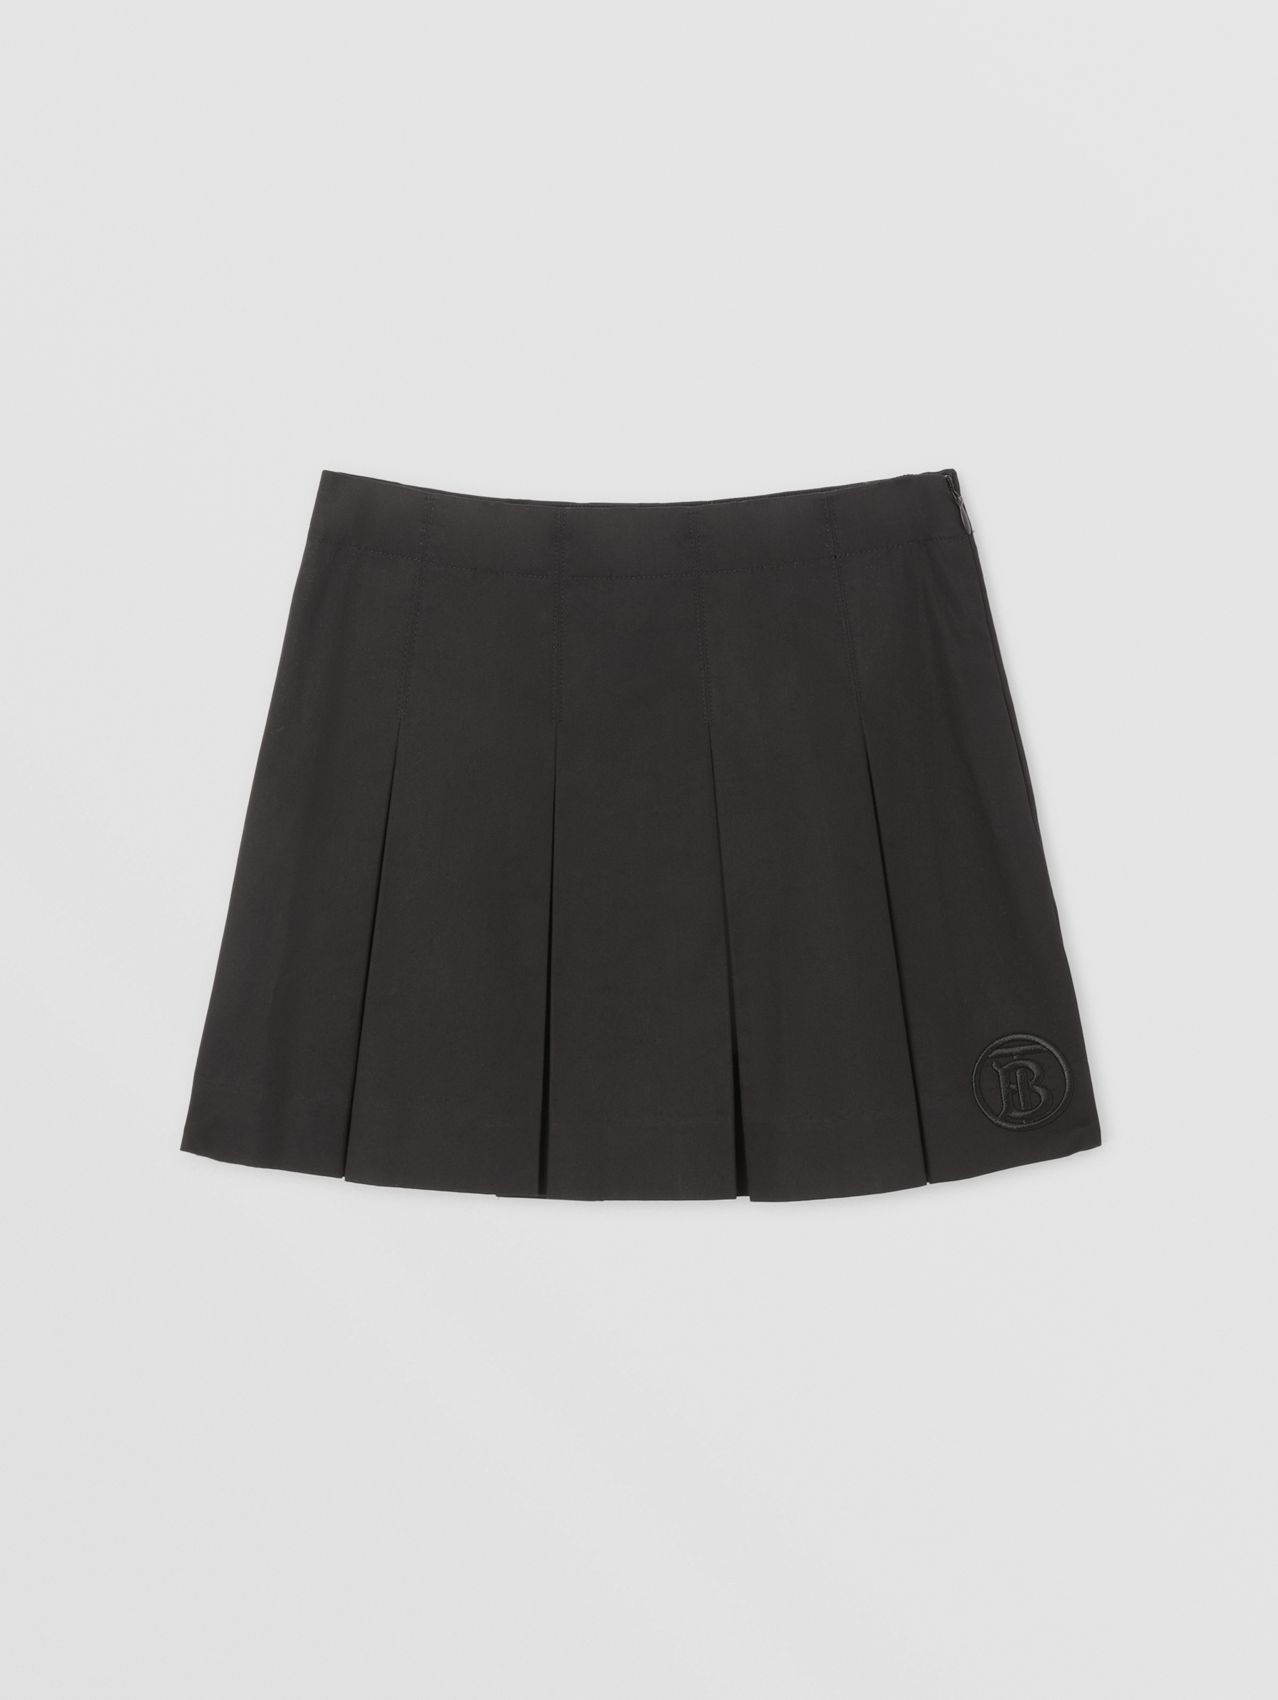 Monogram Motif Cotton Twill Pleated Skirt in Black